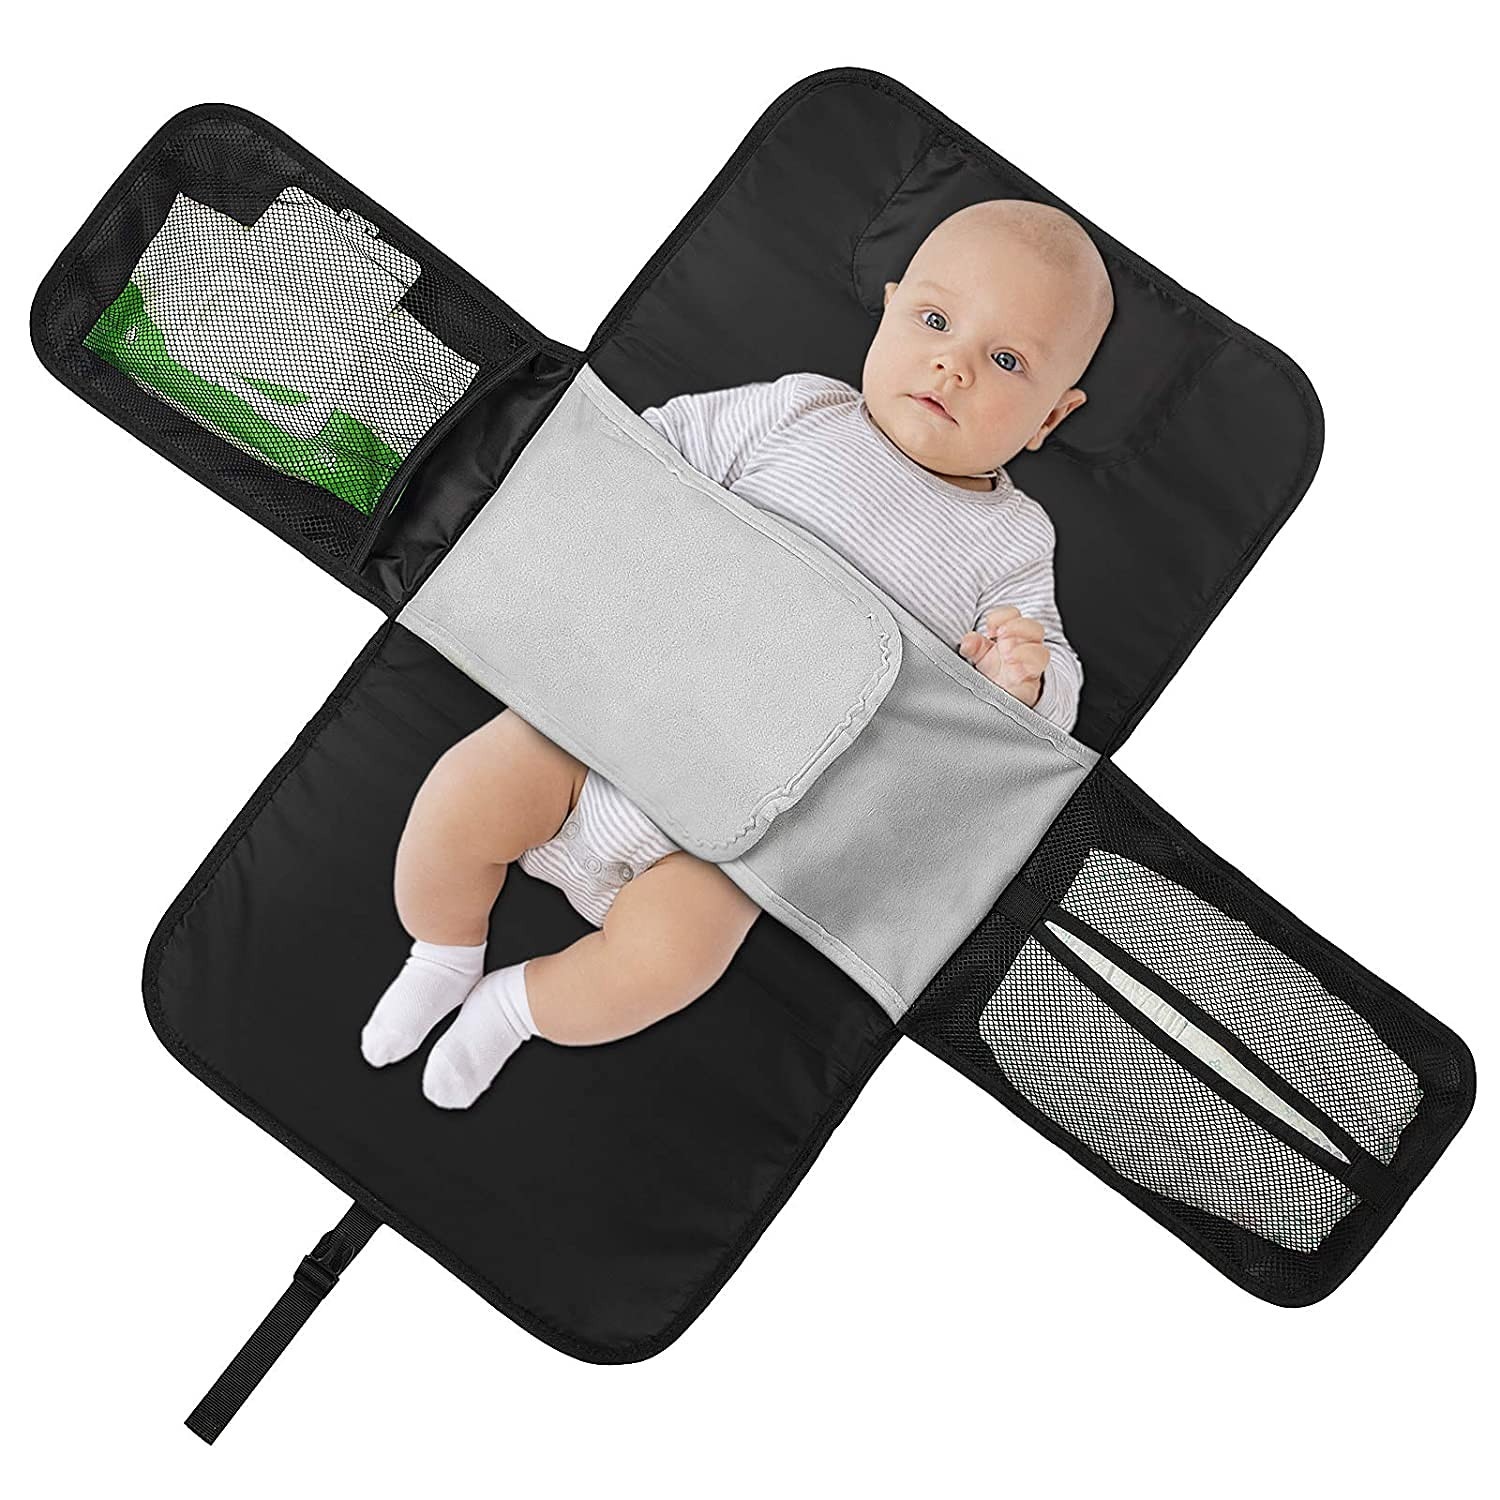 Portable Diaper Changing Pad, Extra Large Baby Changing pad with Fixed Strap, Baby Diaper Bag and Baby Changing Table Pad for Newborns, Waterproof Baby Travel Changing Mat, Baby Shower Gifts